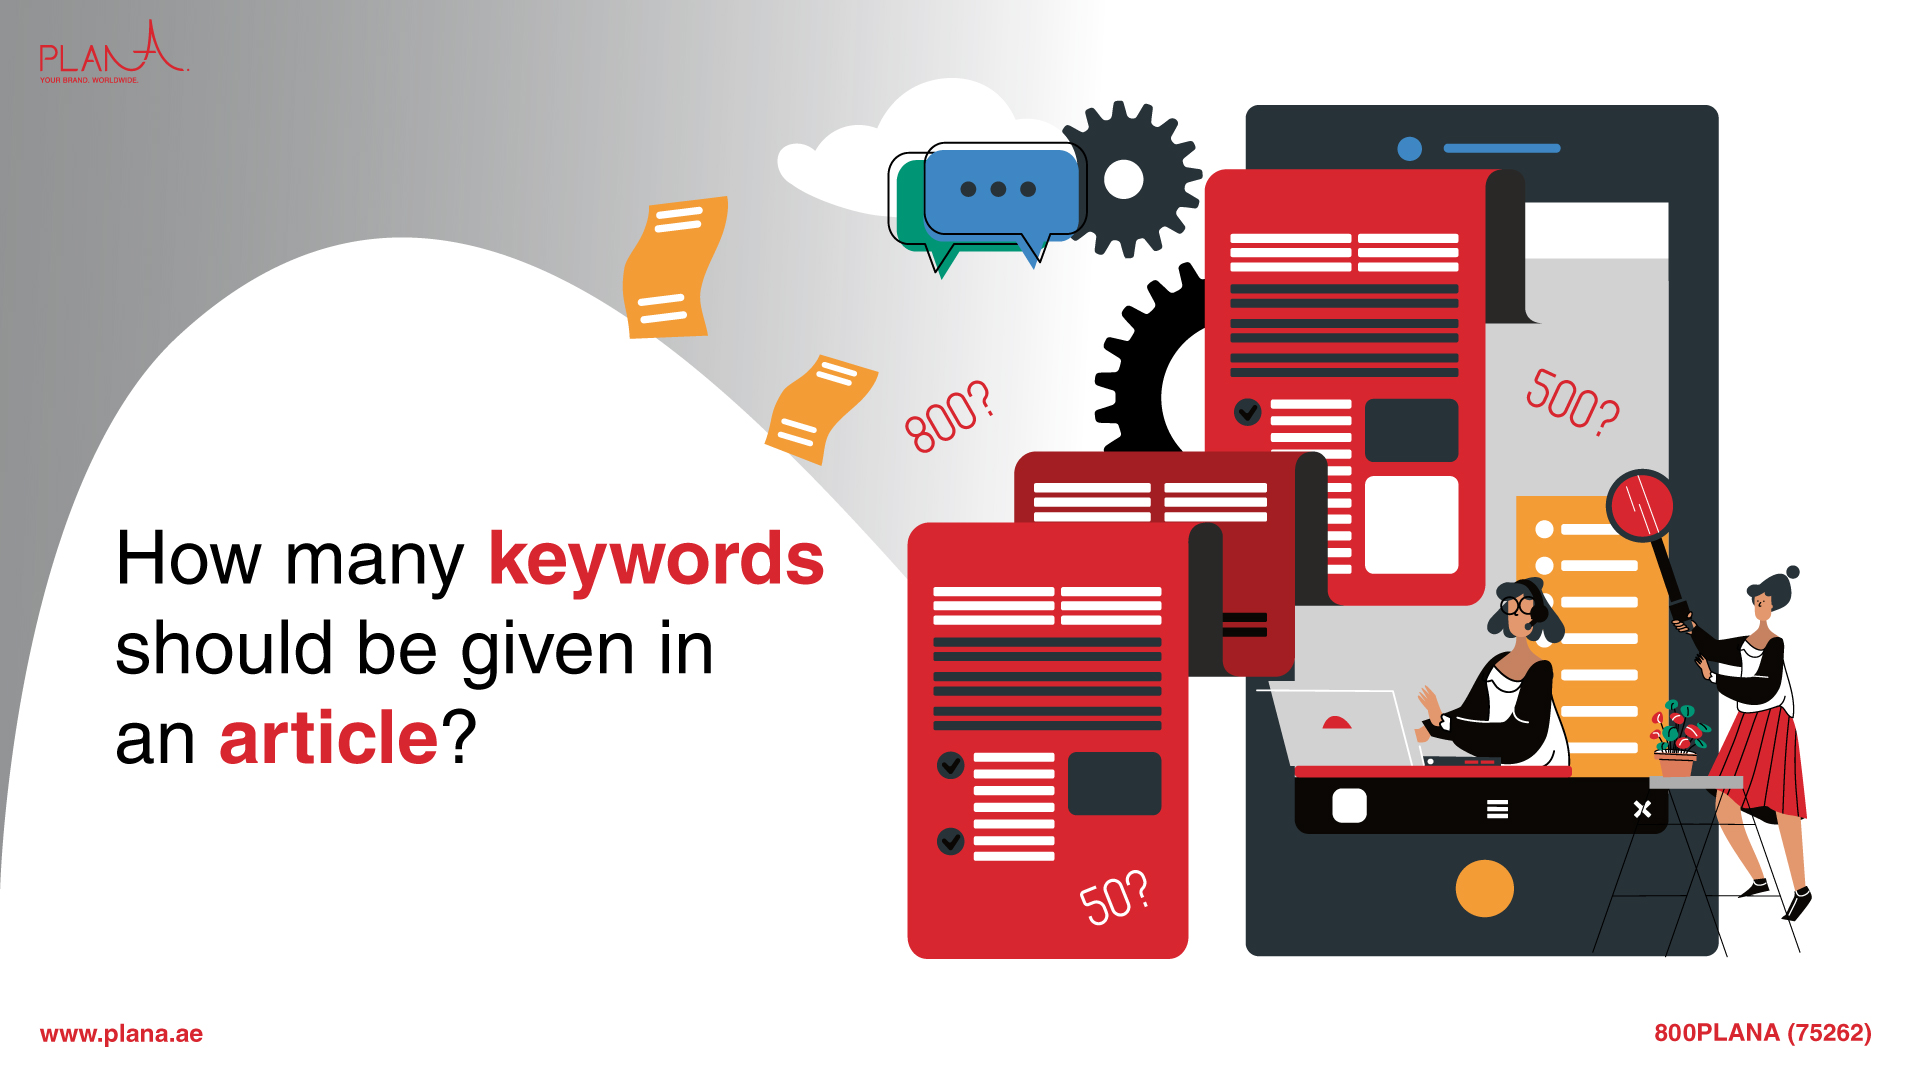 How Many Keywords Should be Given in an Article?